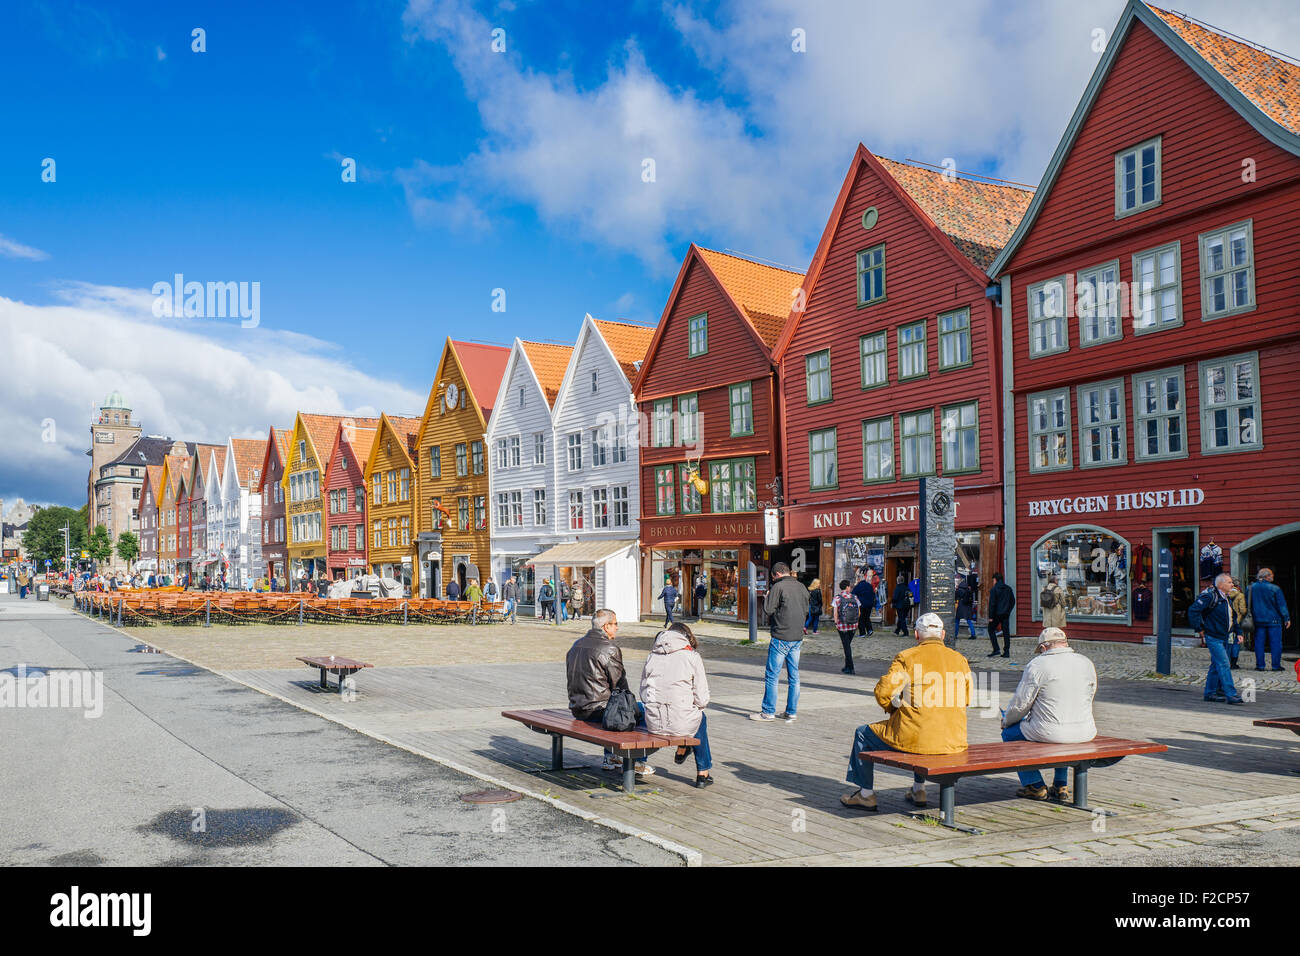 Bryggen in Bergen is a UNESCO World Heritage site and the most visited tourist attraction in Norway. - Stock Image